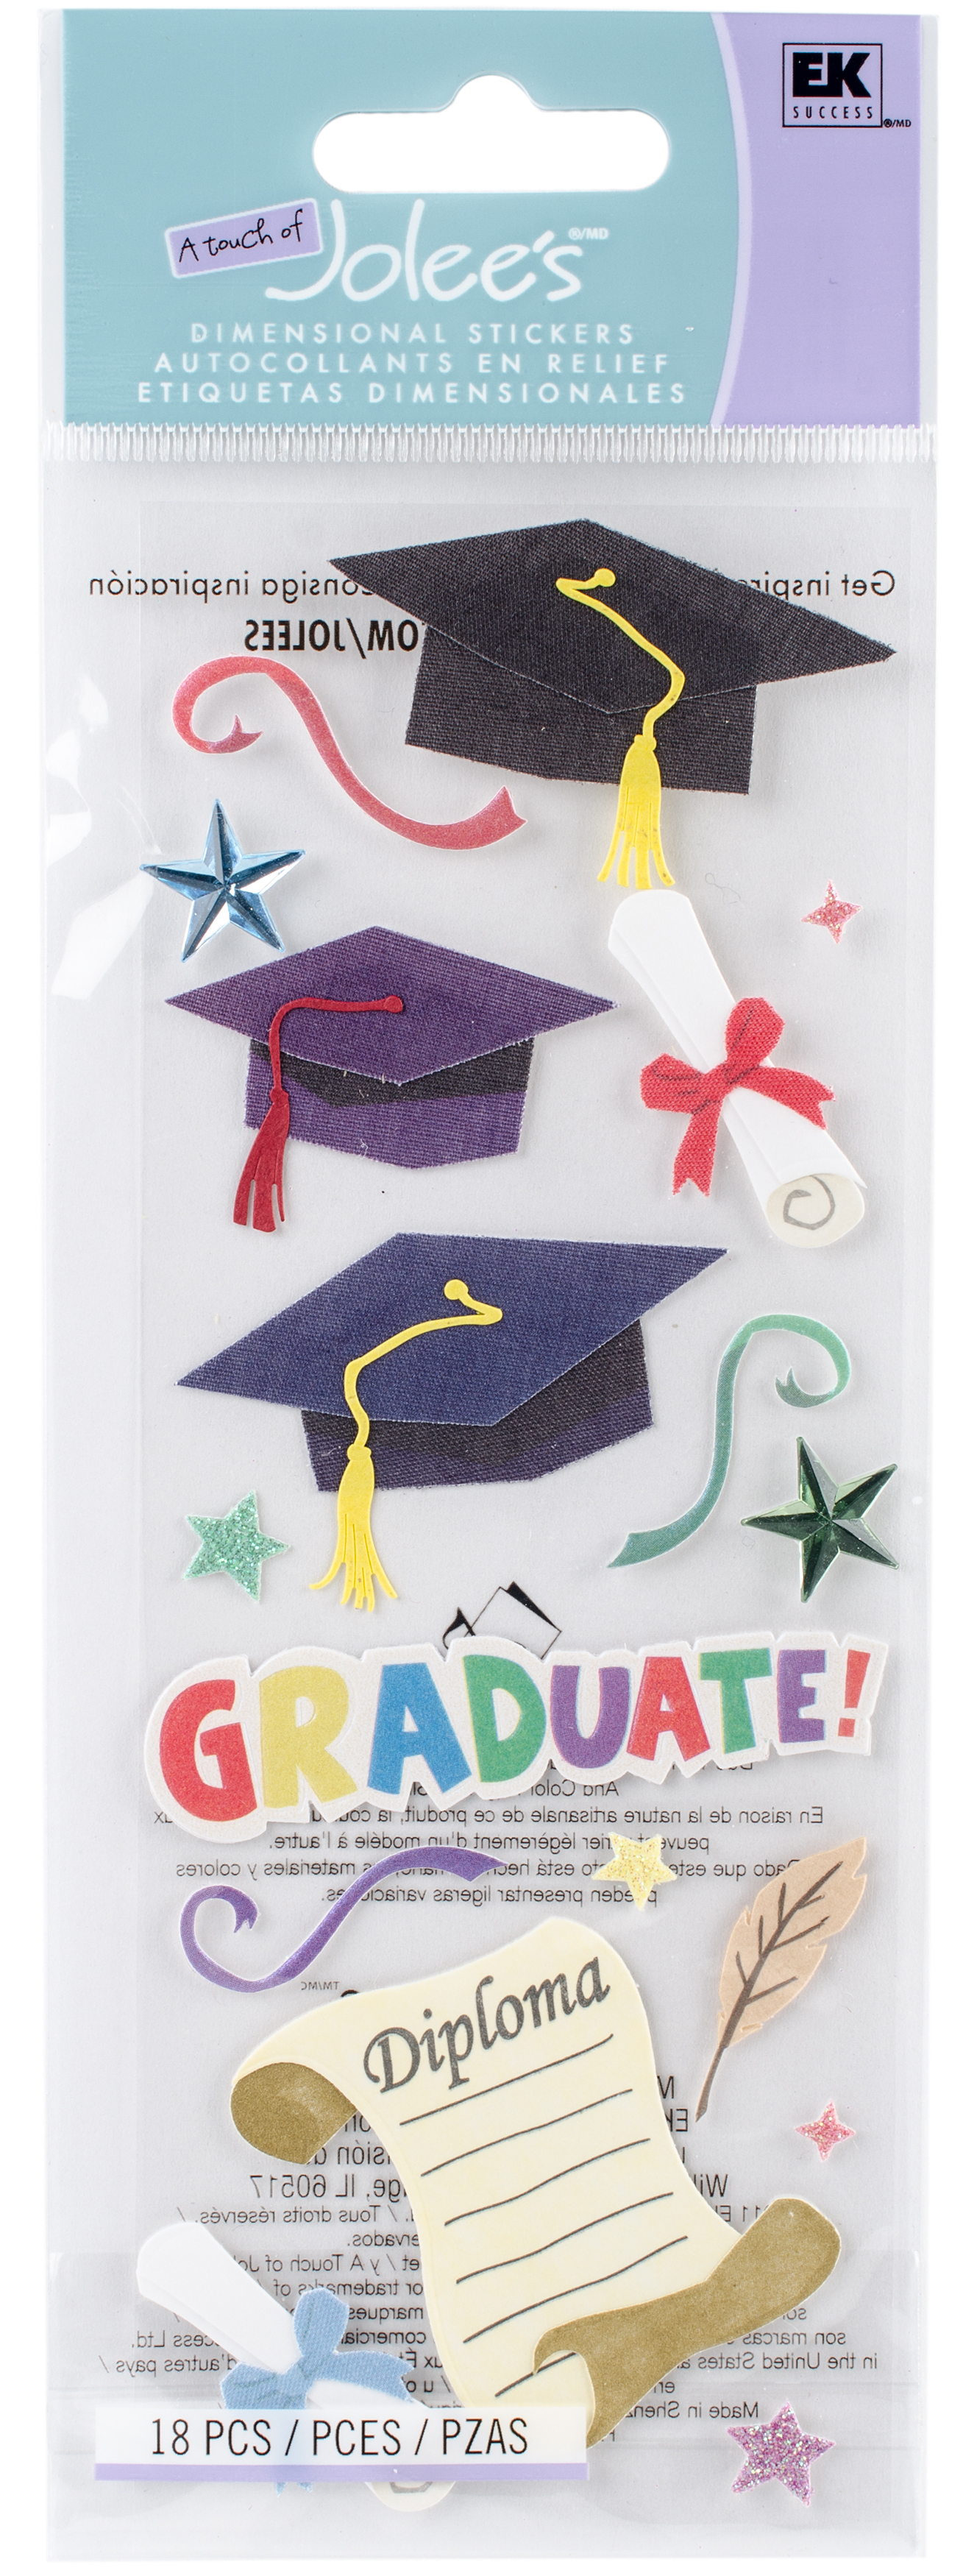 Touch Of Jolee's Dimensional Stickers-Graduation